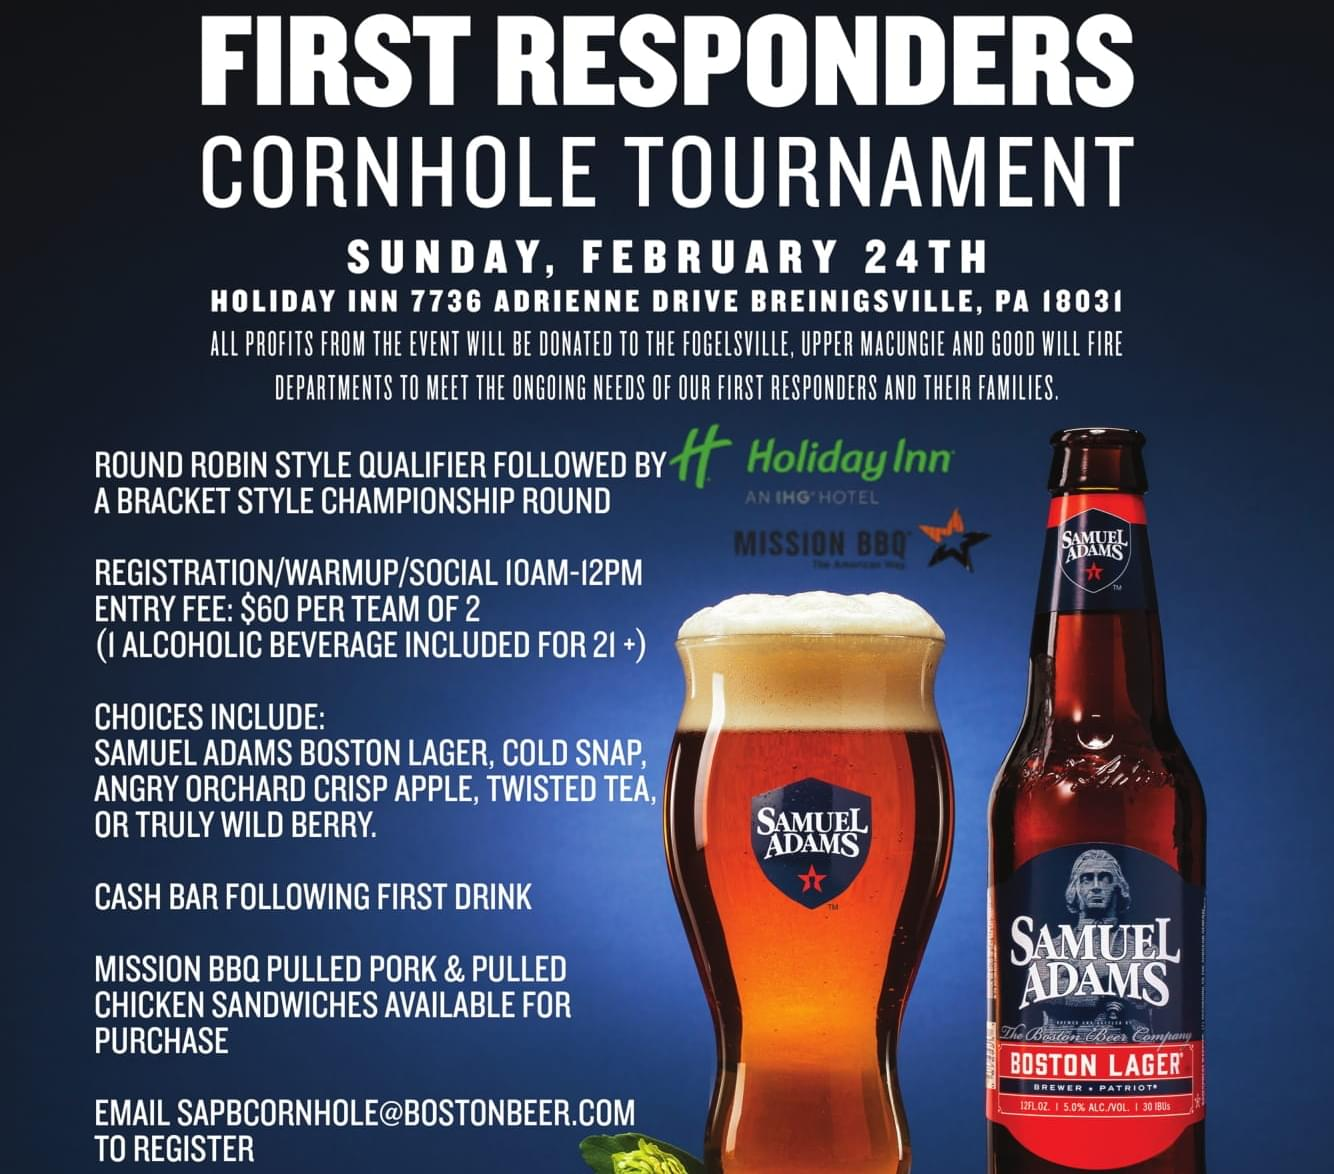 First Responders Cornhole Tournament